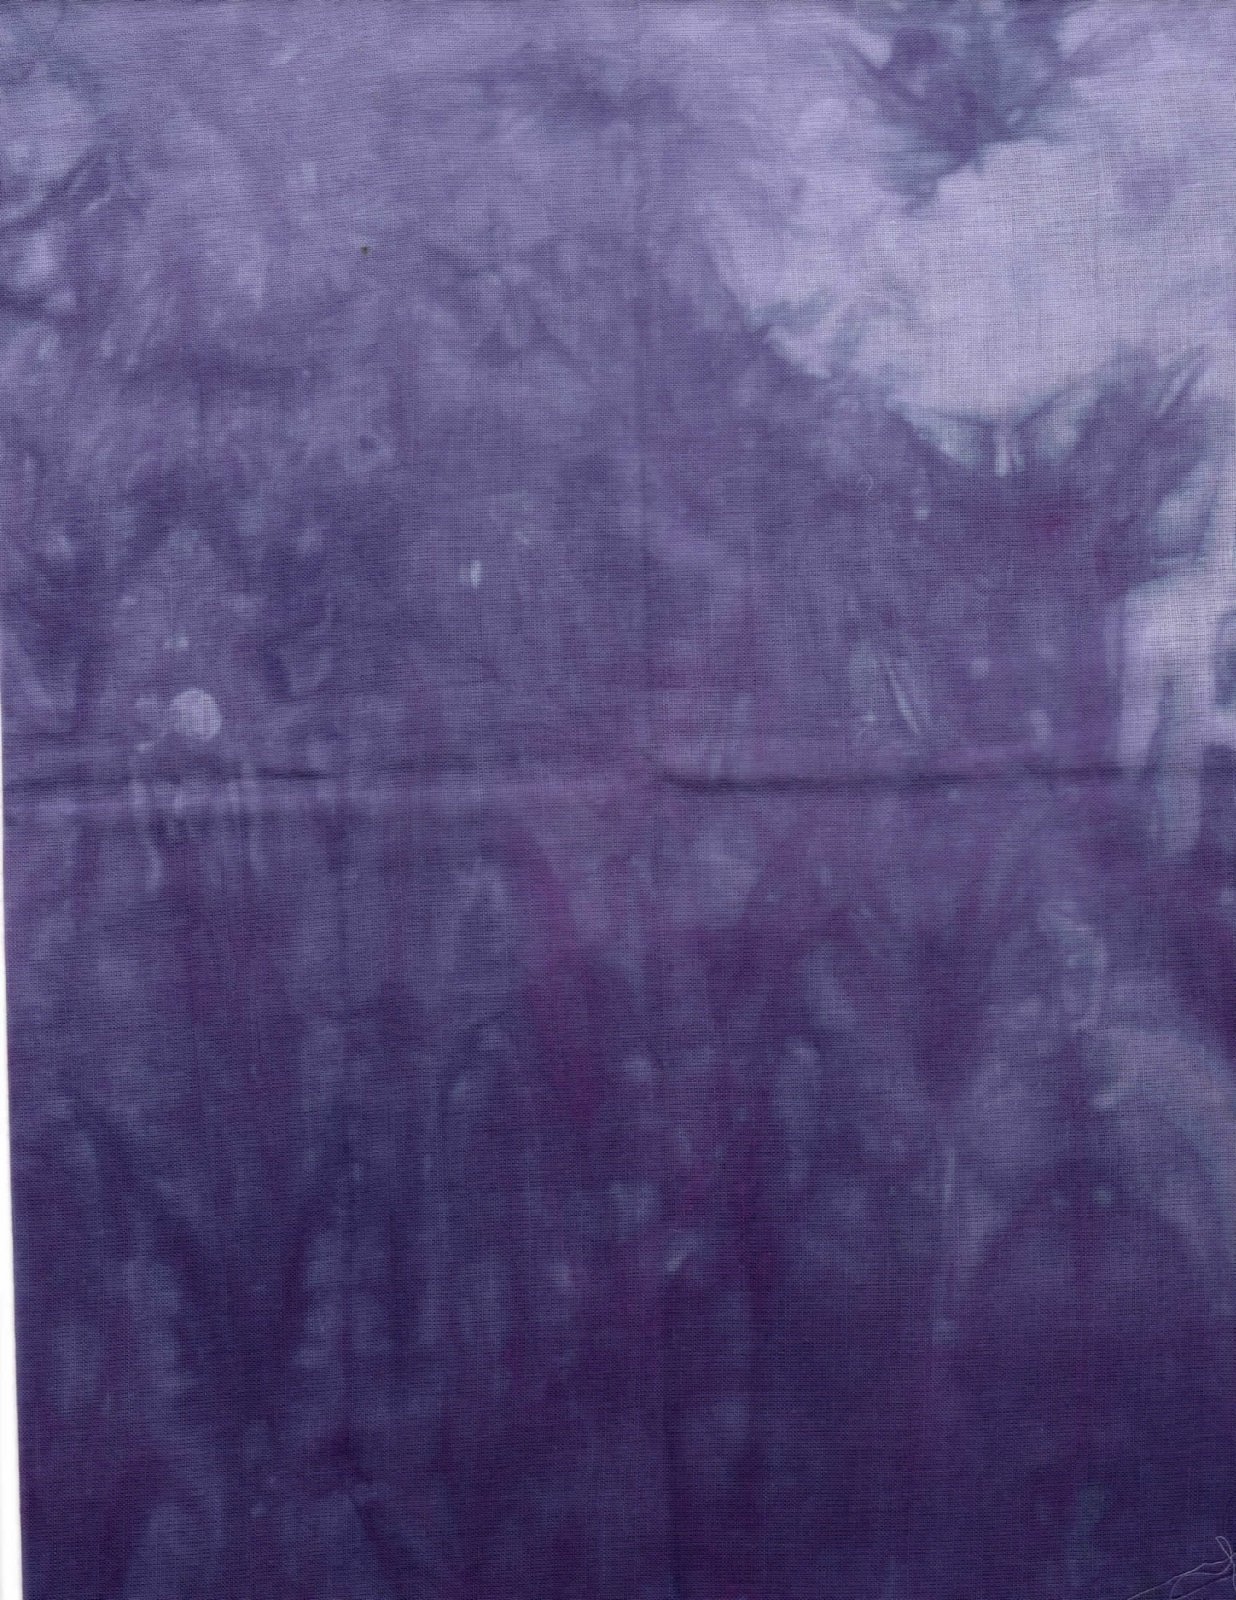 Visions of Plum Hand-Dyed Organdy FQ